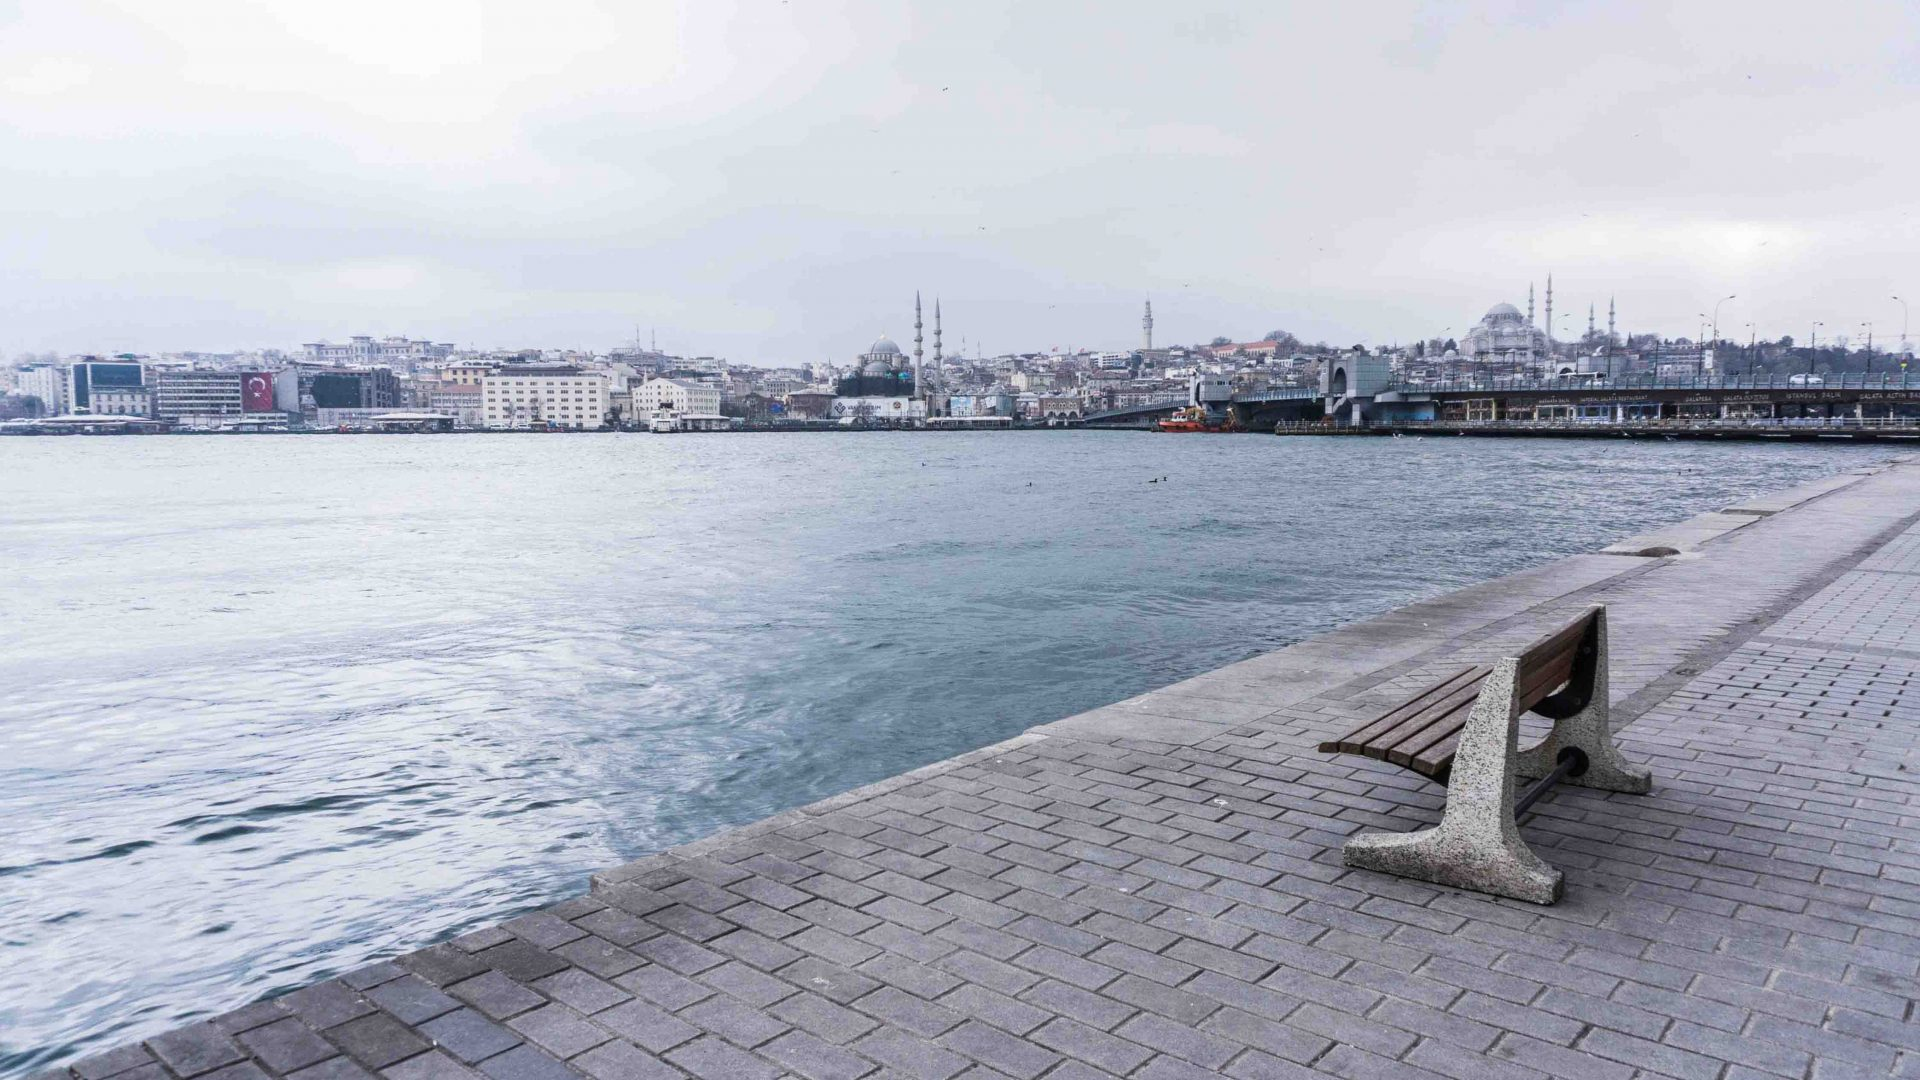 The lively harborside area of Karaköy in front of the old town, near the Galata Bridge.